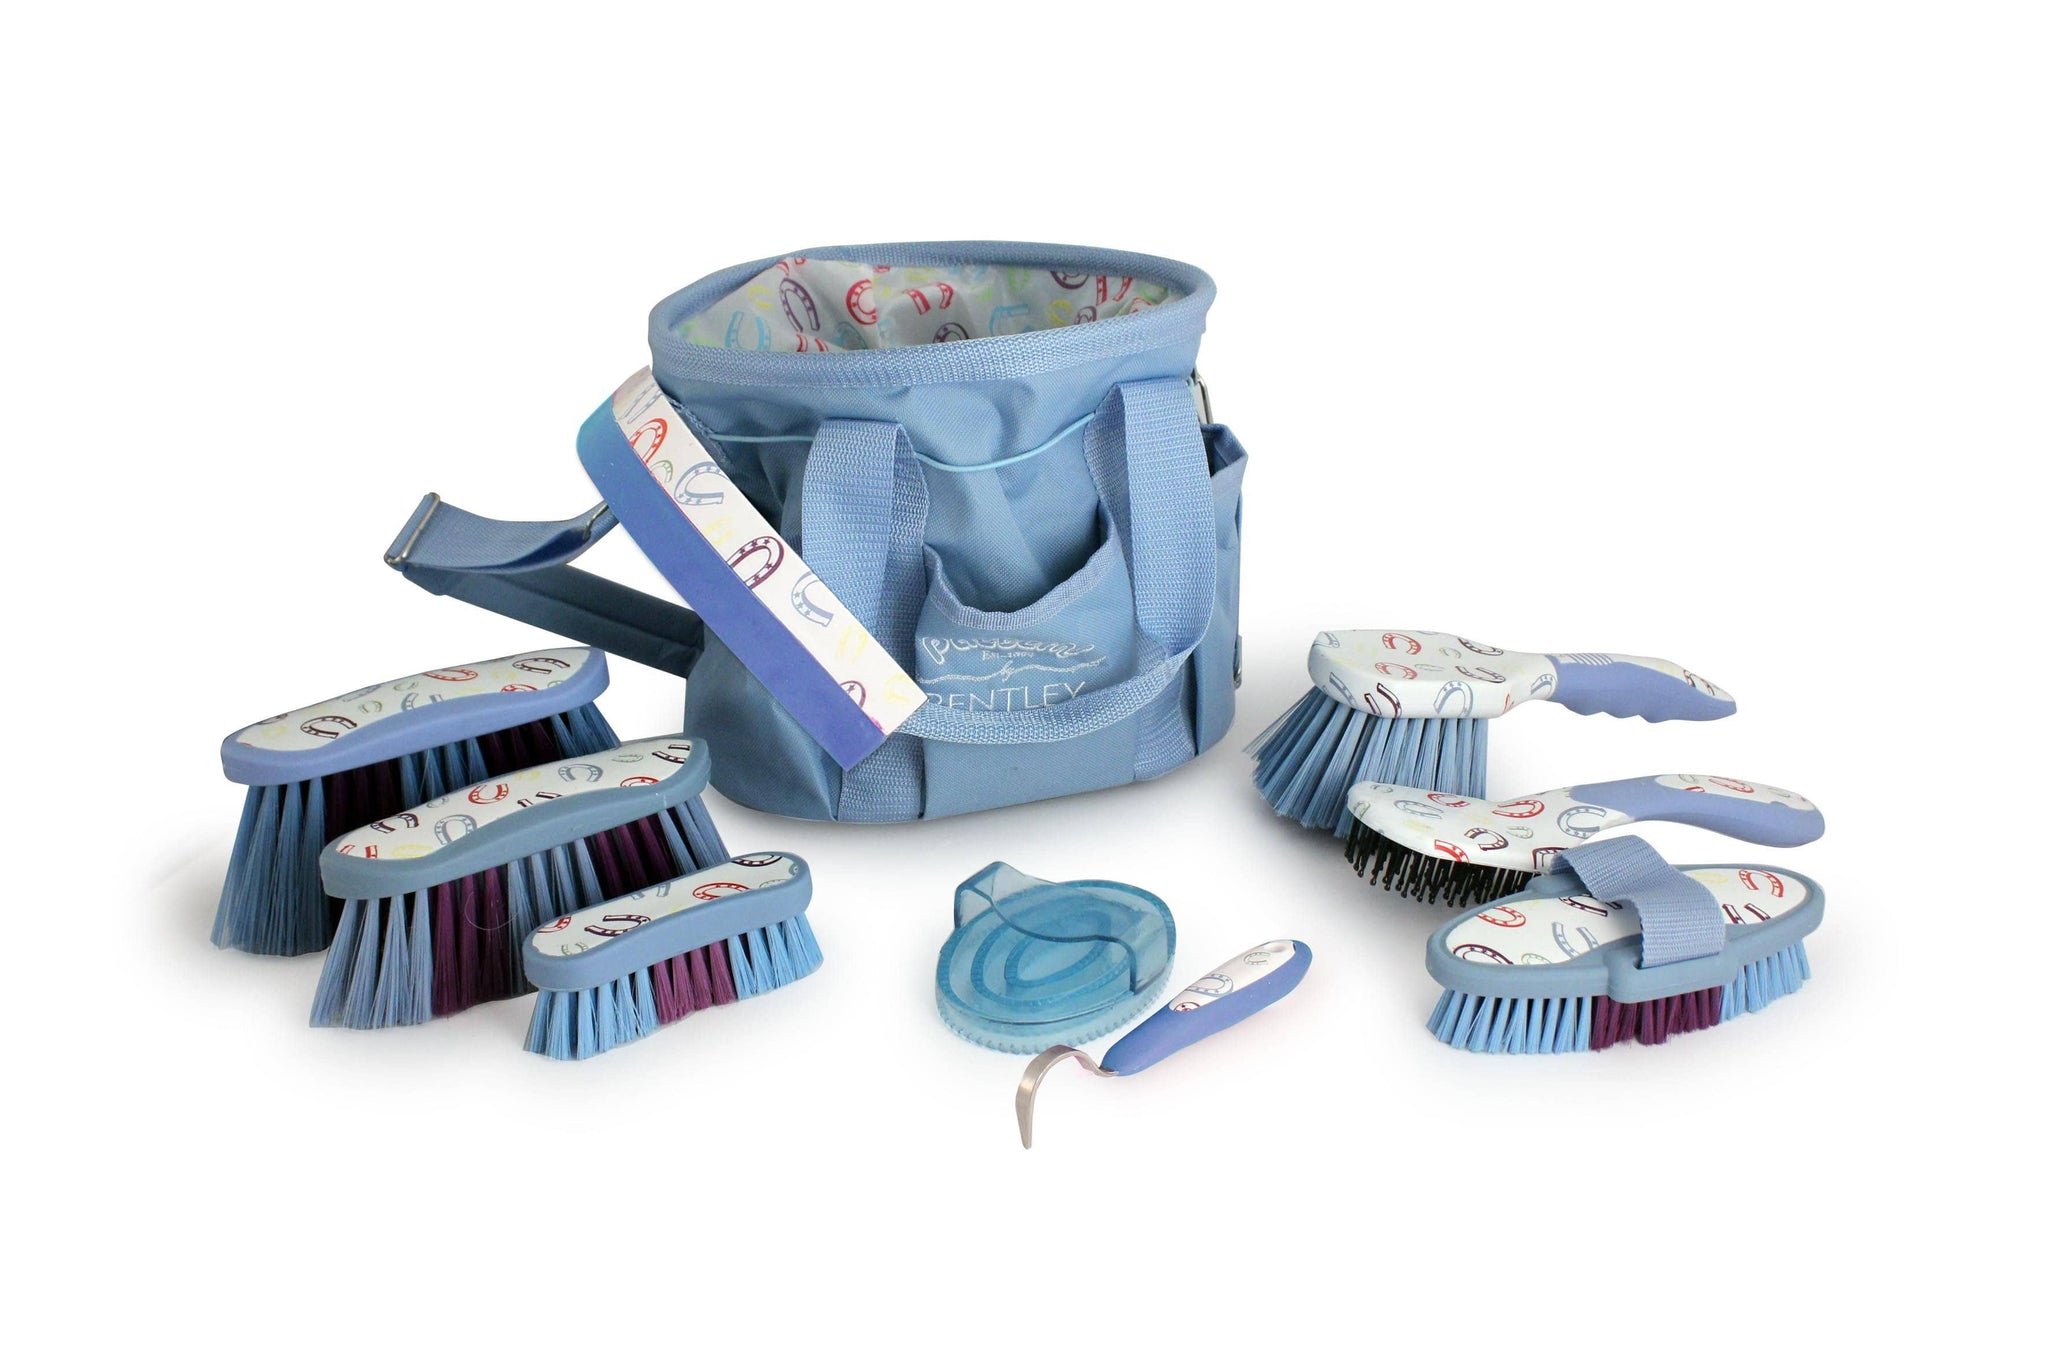 Bentley Patterns Horse Shoe Grooming Set Blue SPN1200